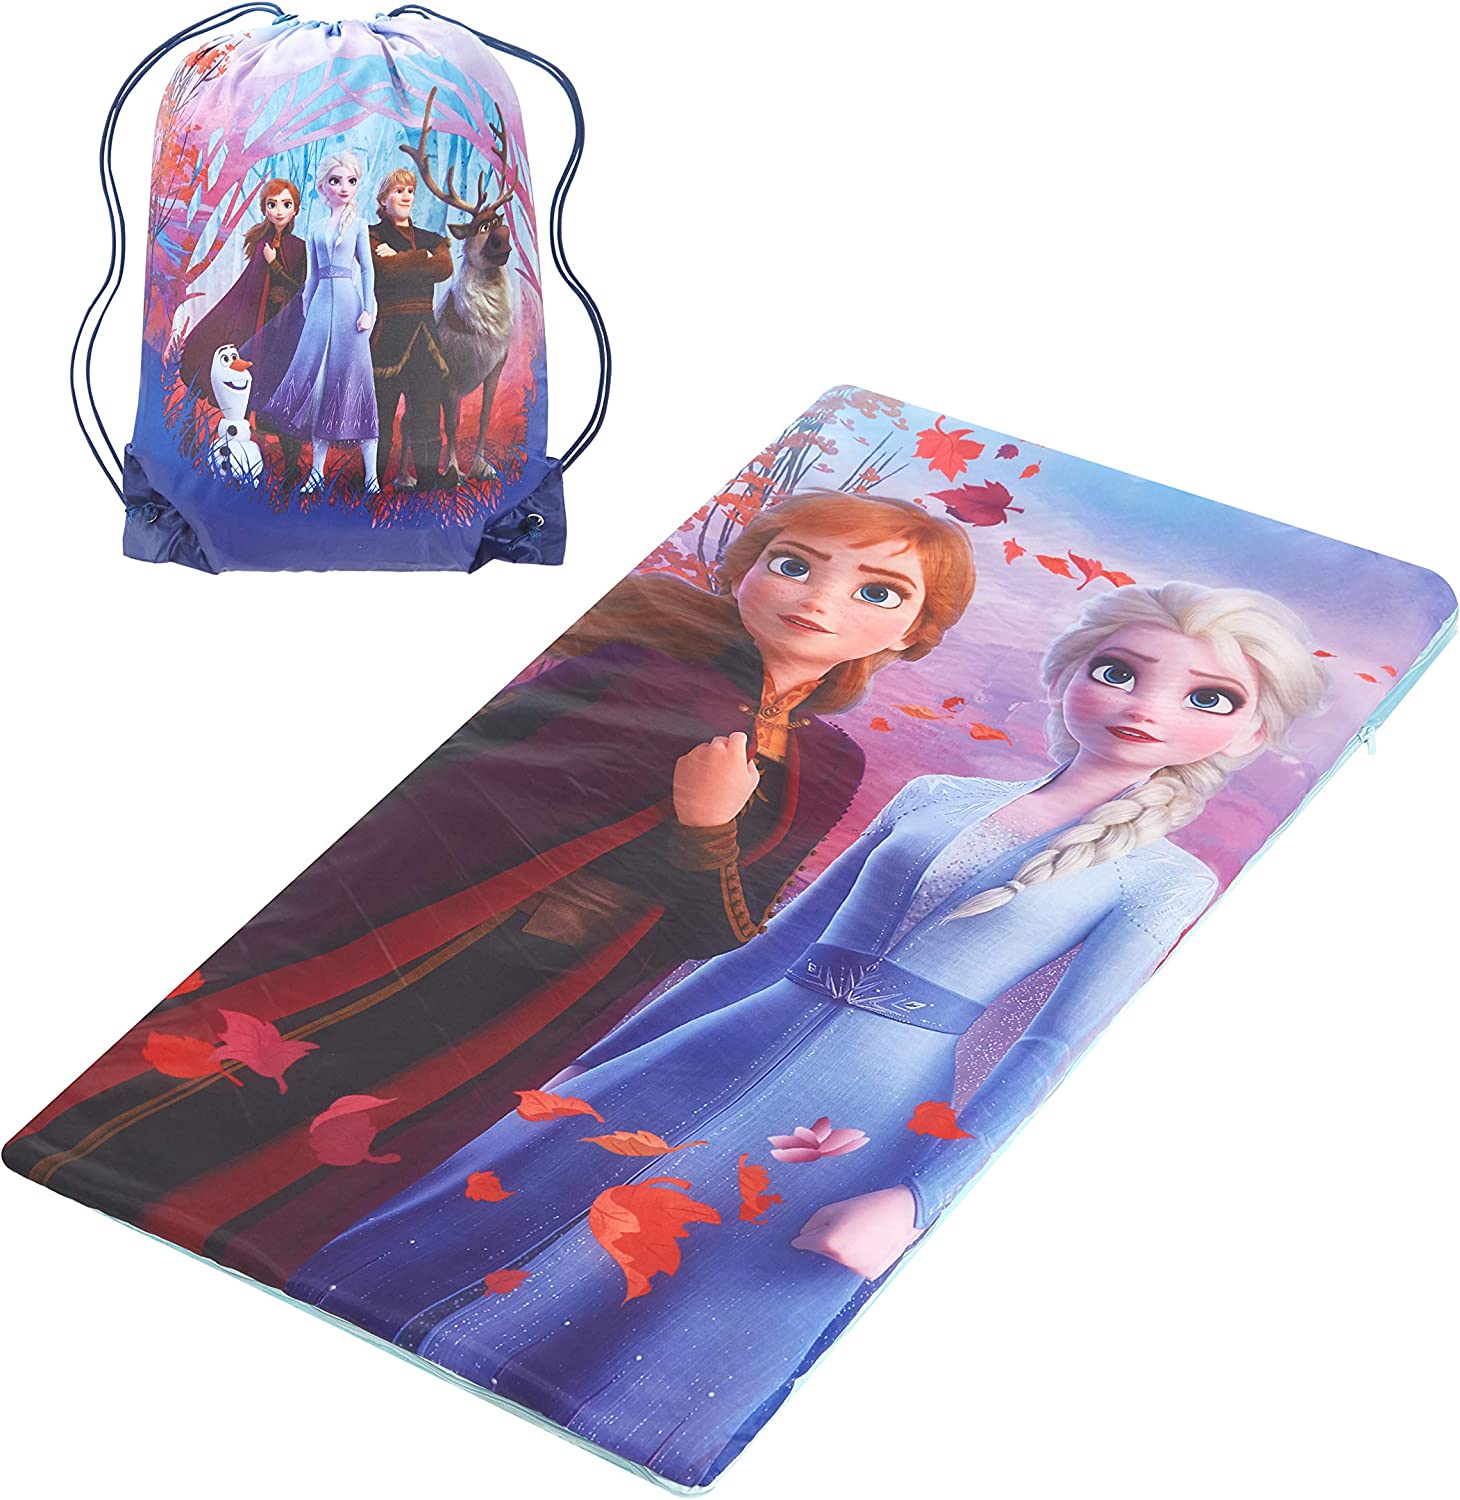 """Idea Nuova Disney Frozen 2 Sling Bag and Cozy Lightweight Sleeping Bag, 46"""" L x 26"""" W, Ages 3+"""